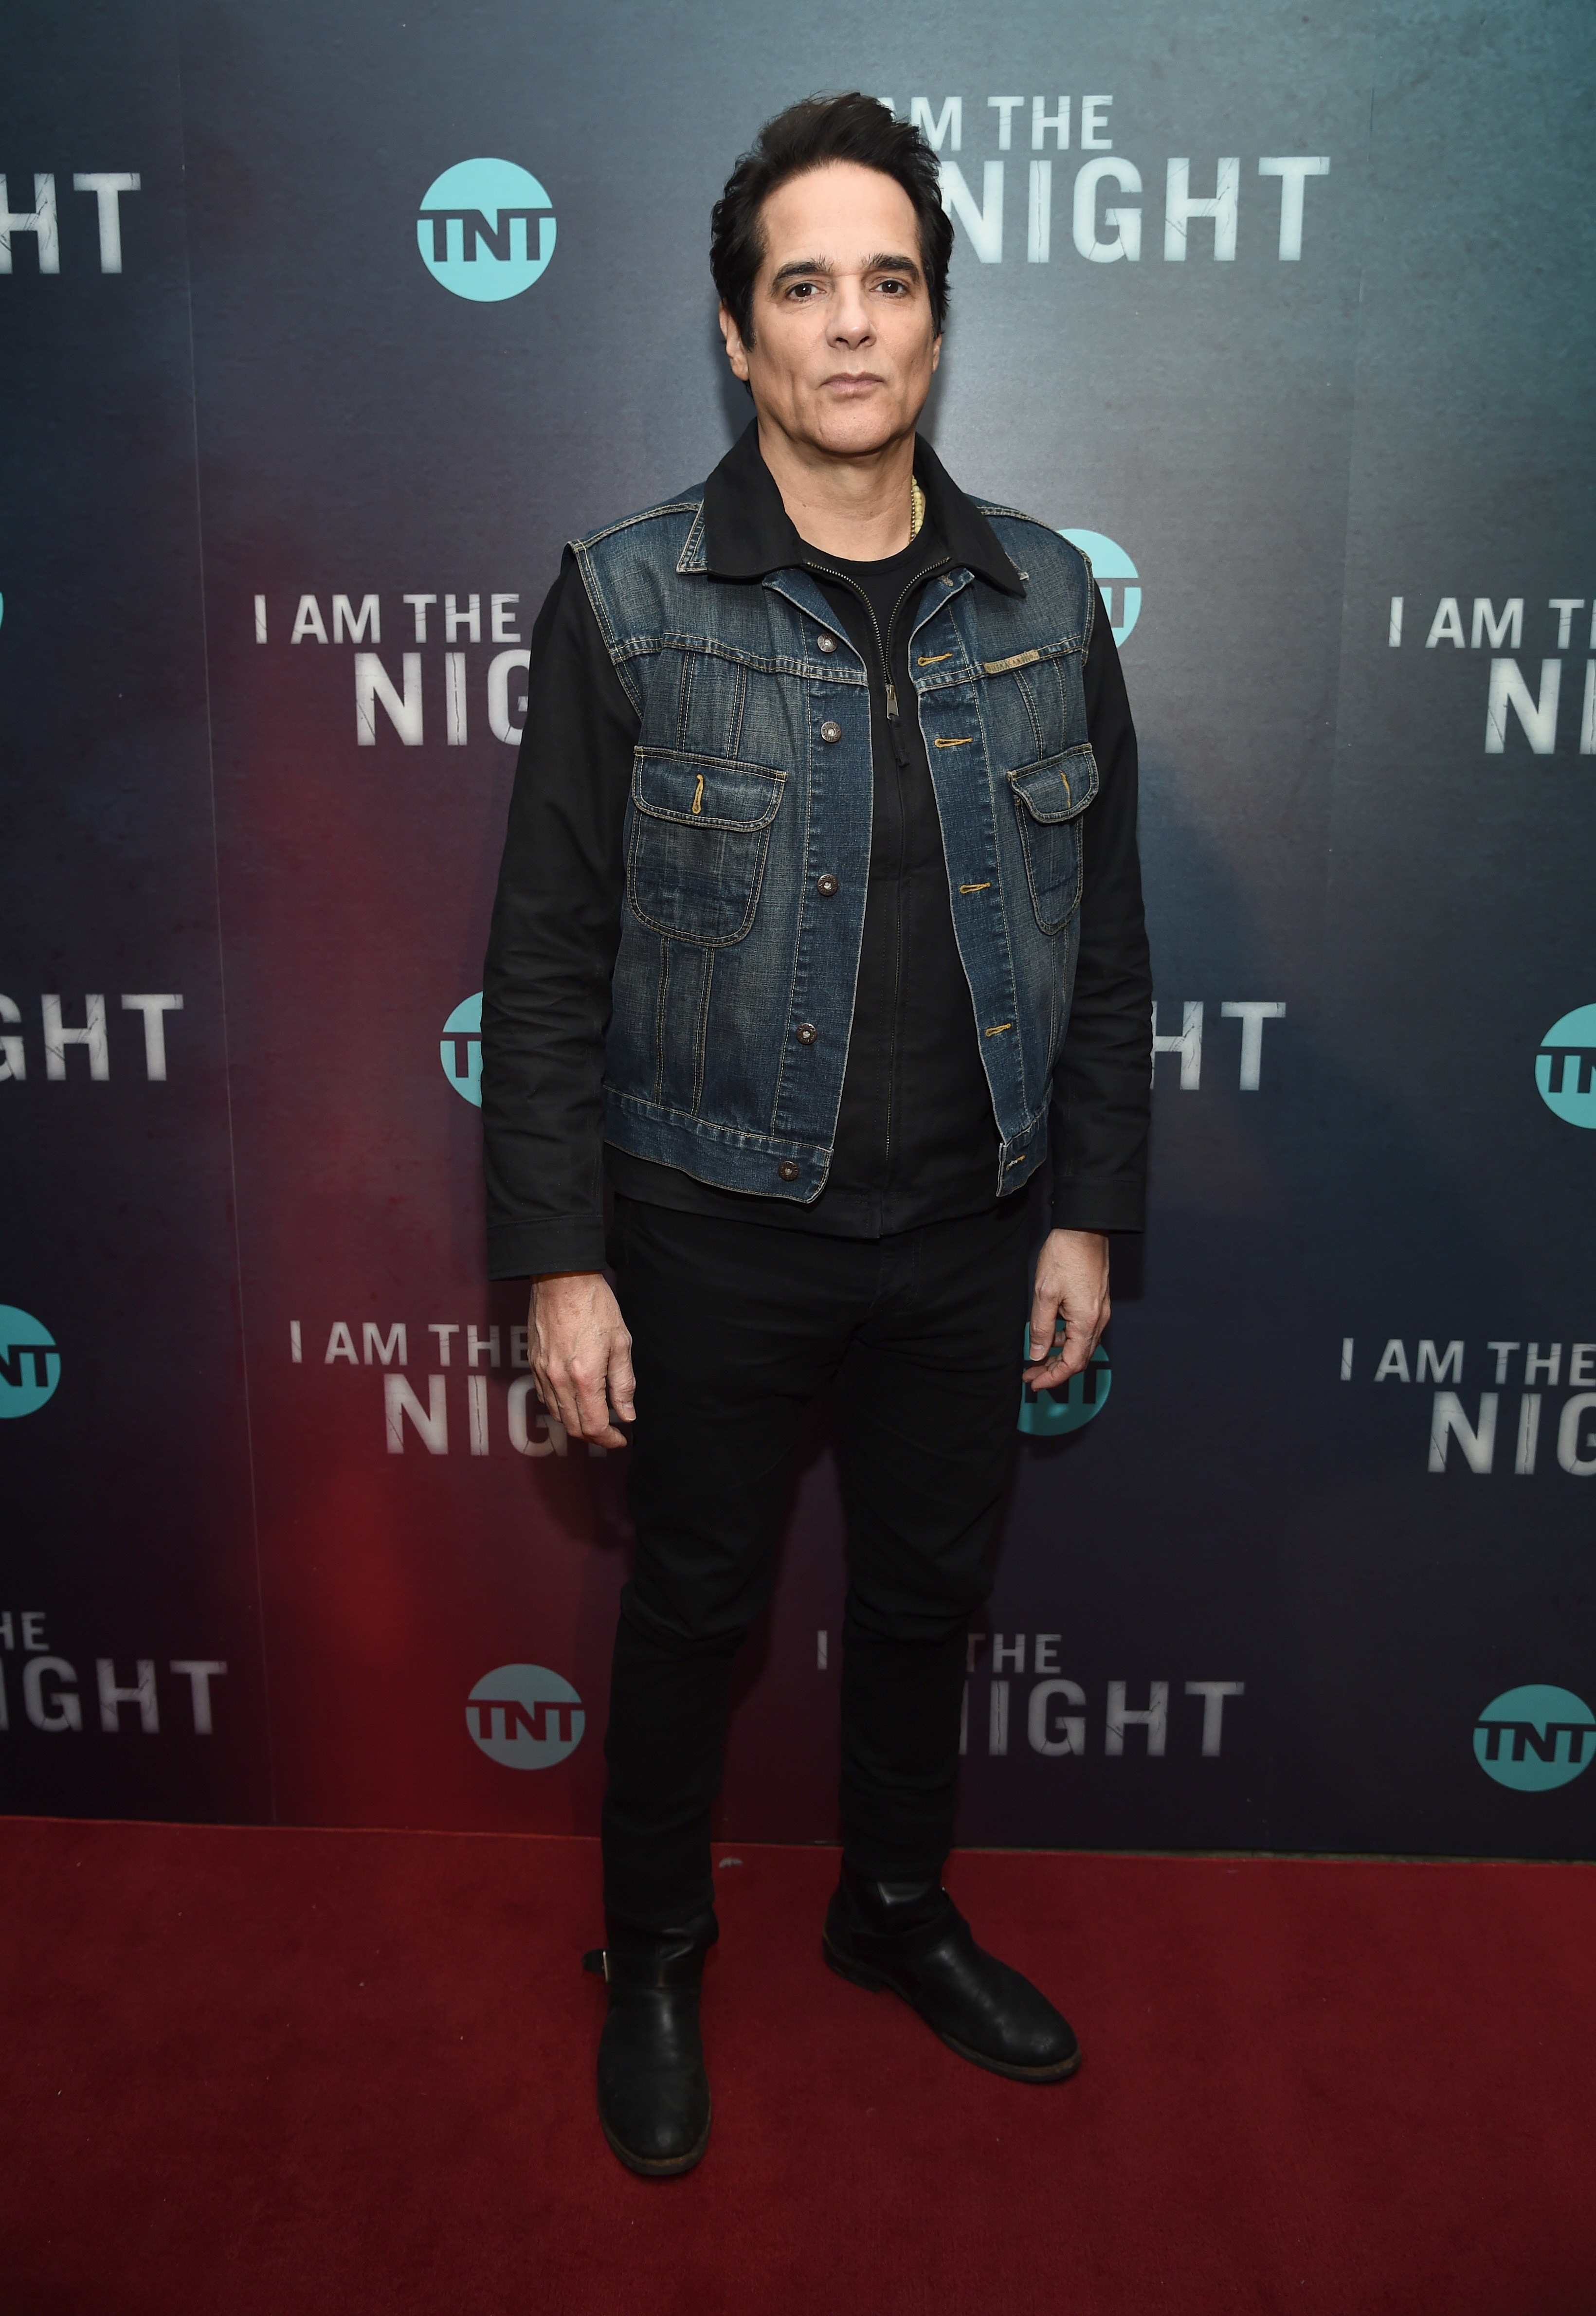 Yul Vazquez attends the 'I Am The Night' New York Premiere at Metrograph on January 22, 2019 in New York City. (Photo by Dimitrios Kambouris/Getty Images)